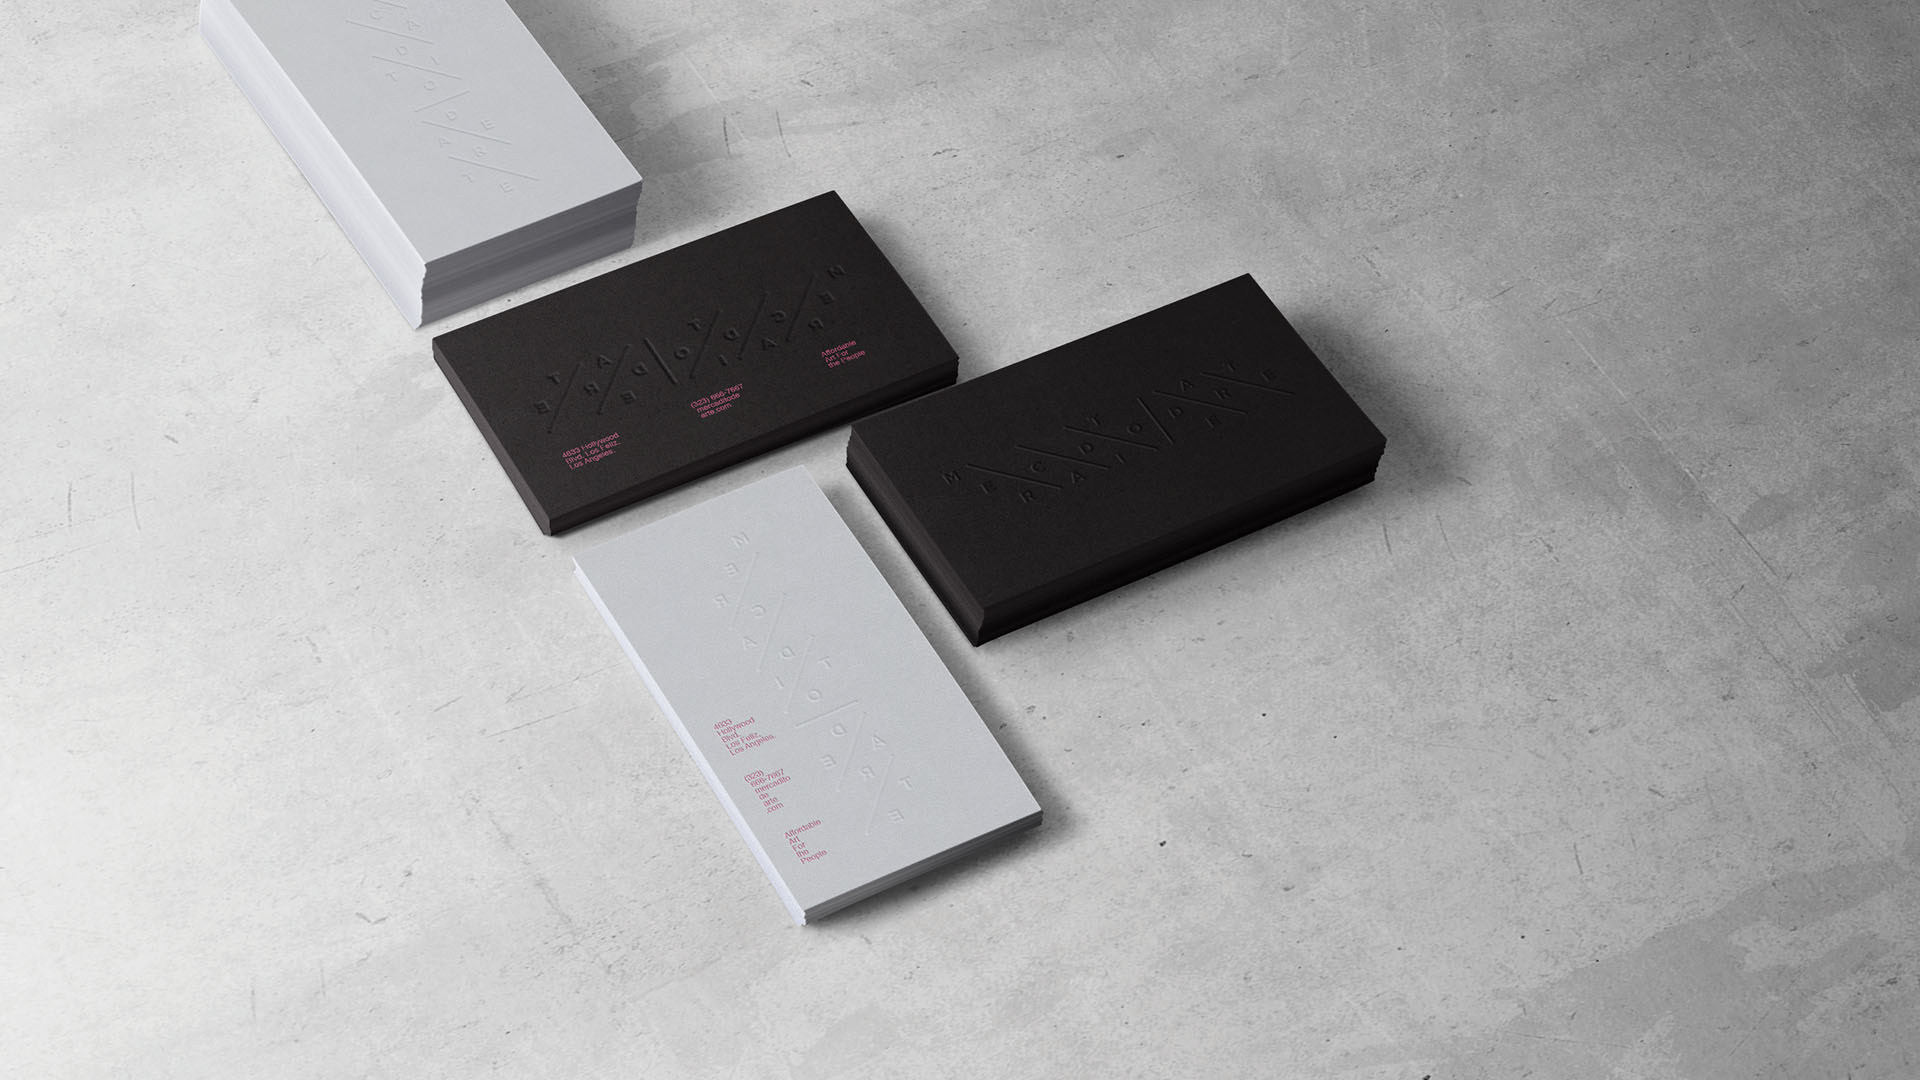 branding, stationery, black white, concrete, minimalist, embossed, business cards, letterpress, top view